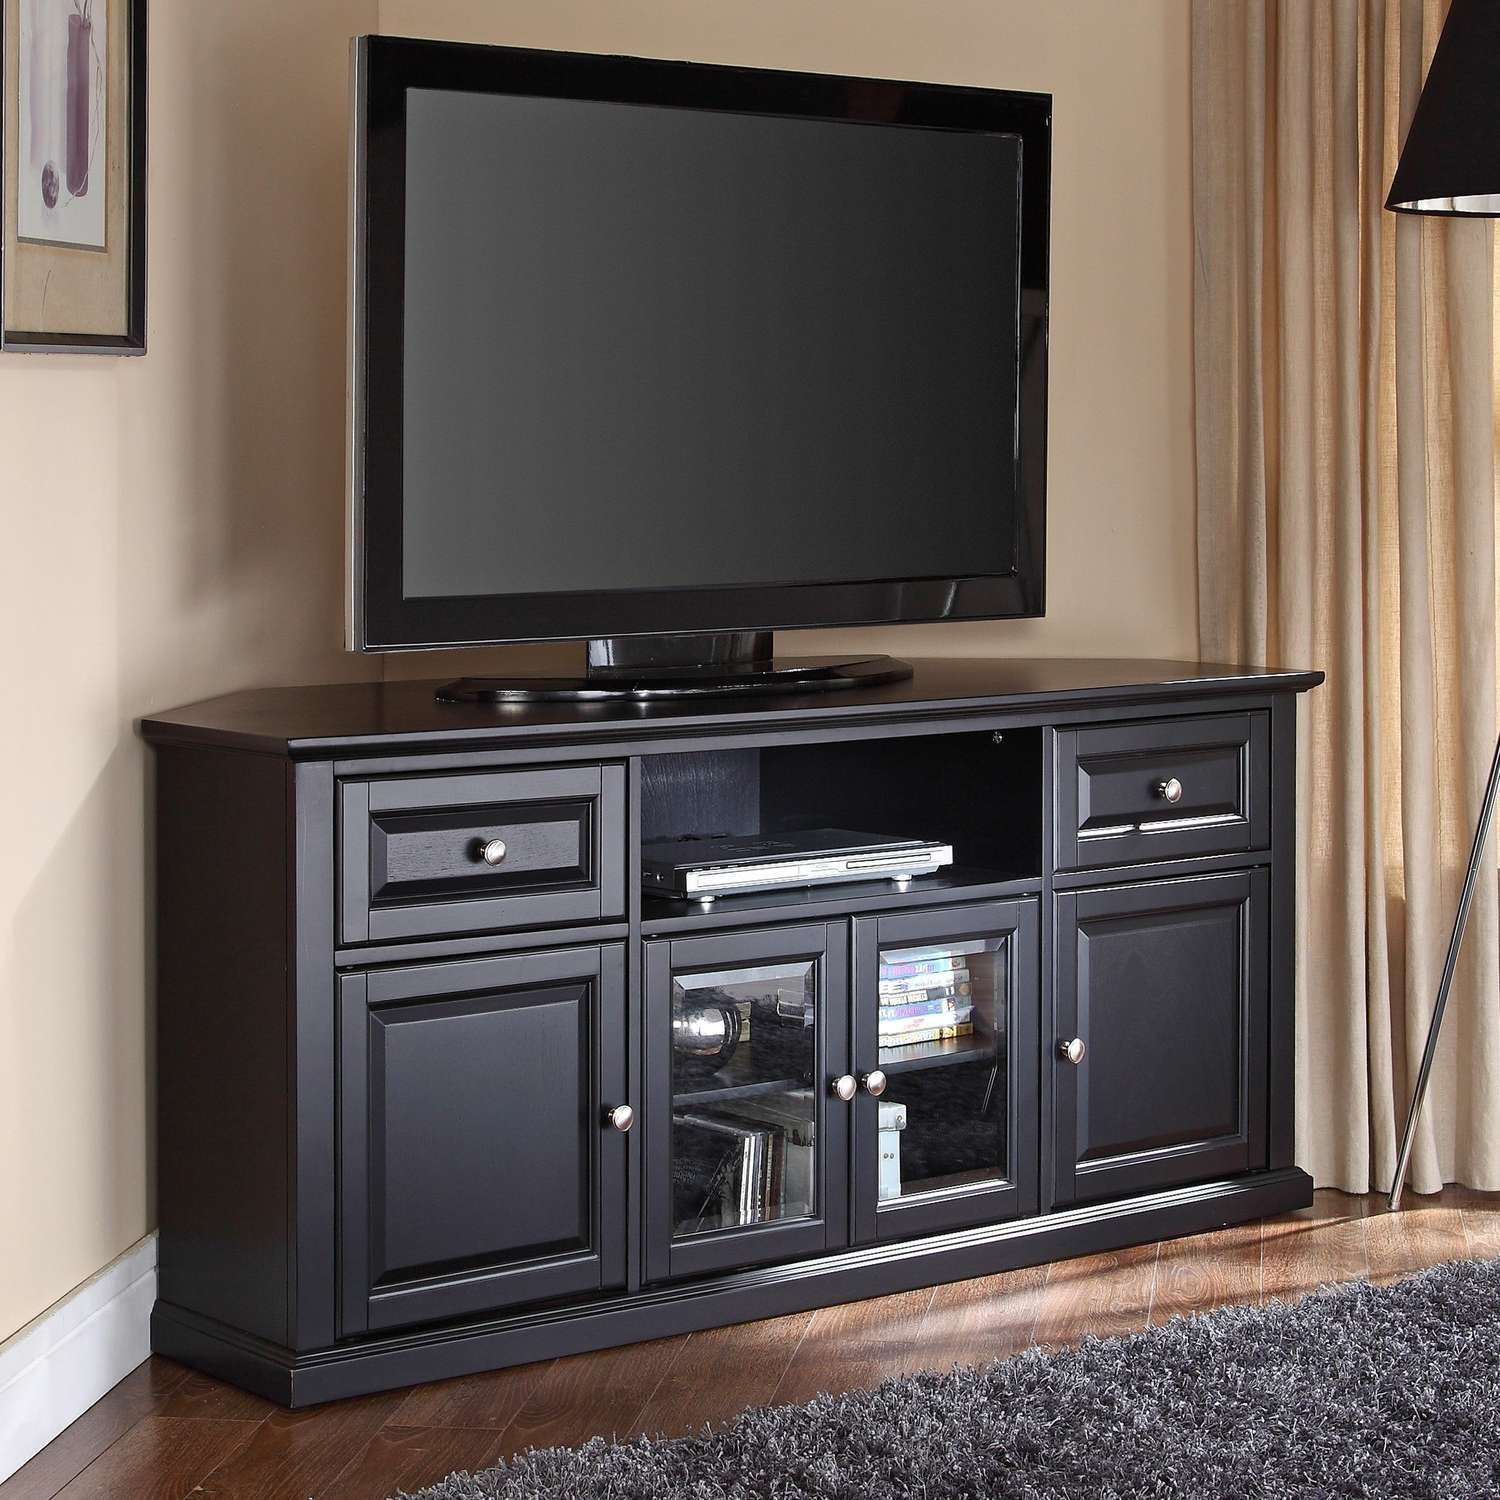 Talla Cabinets With Doors Glass Elegant Black Hardwood Cabinet With Corner Tv Cabinets With Glass Doors (View 15 of 20)